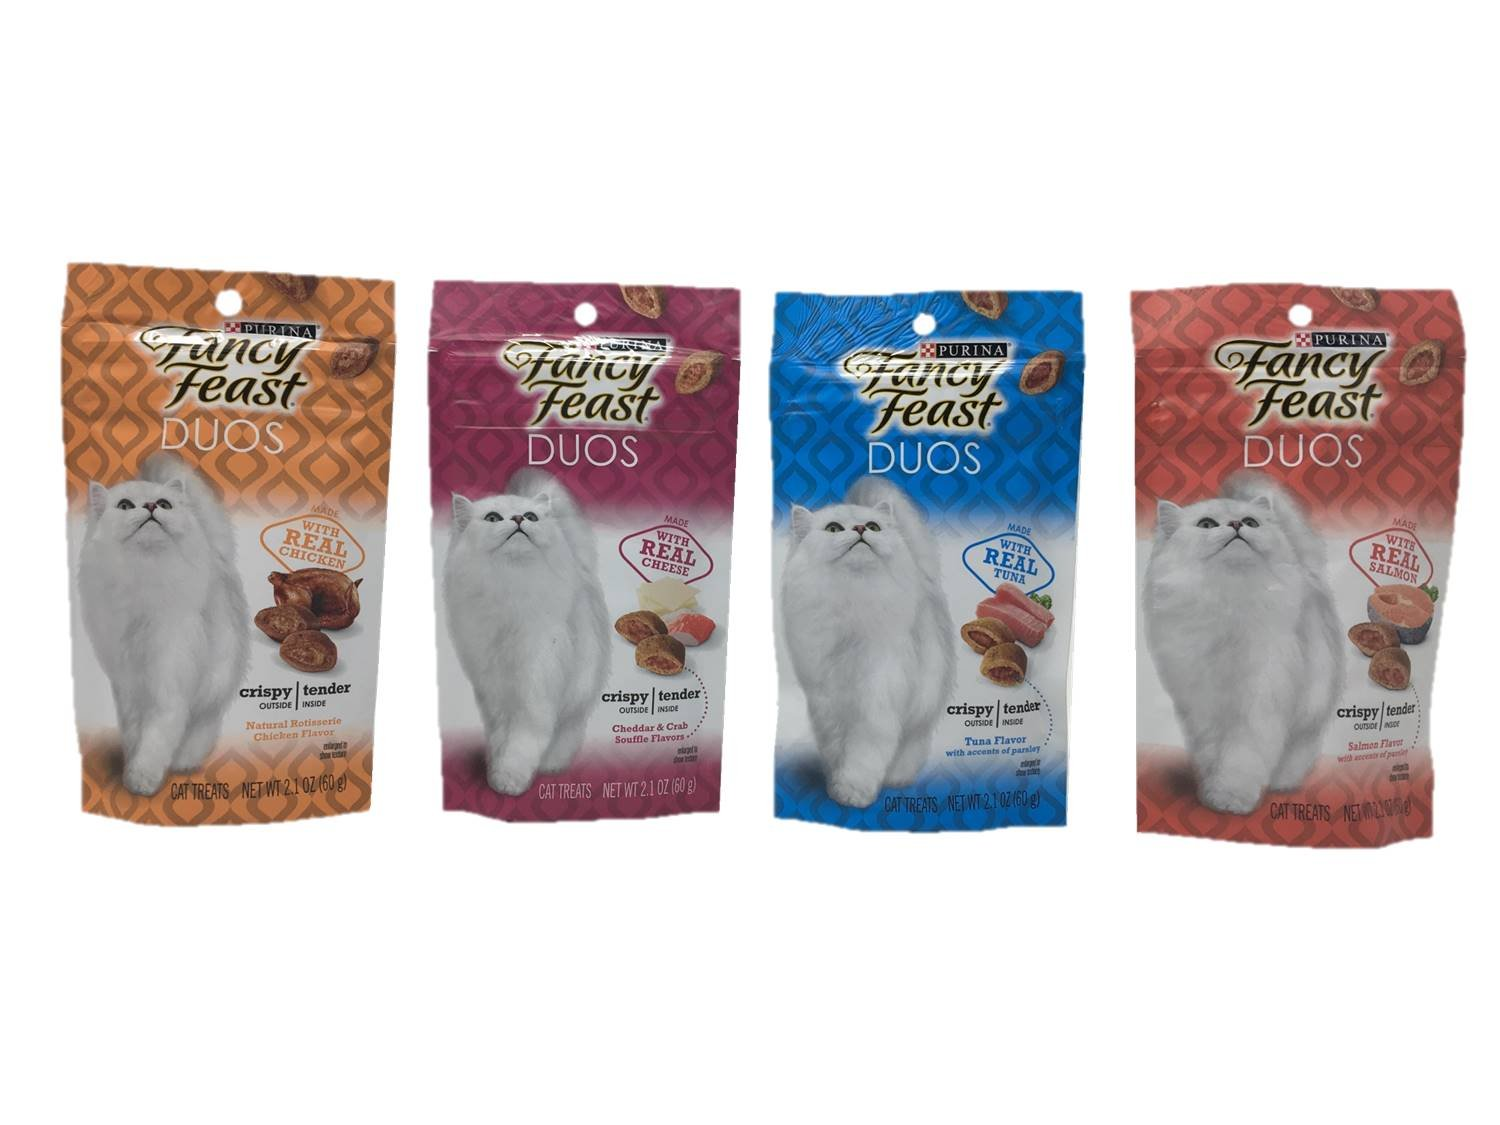 Purina Fancy Feast Duos Cat Treats Variety Pack Bundle Set of 4 Flavors, 2.1 ounces each (Natural Rotisserie Chicken, Cheddar & Crab Souffle, Tuna, Salmon)